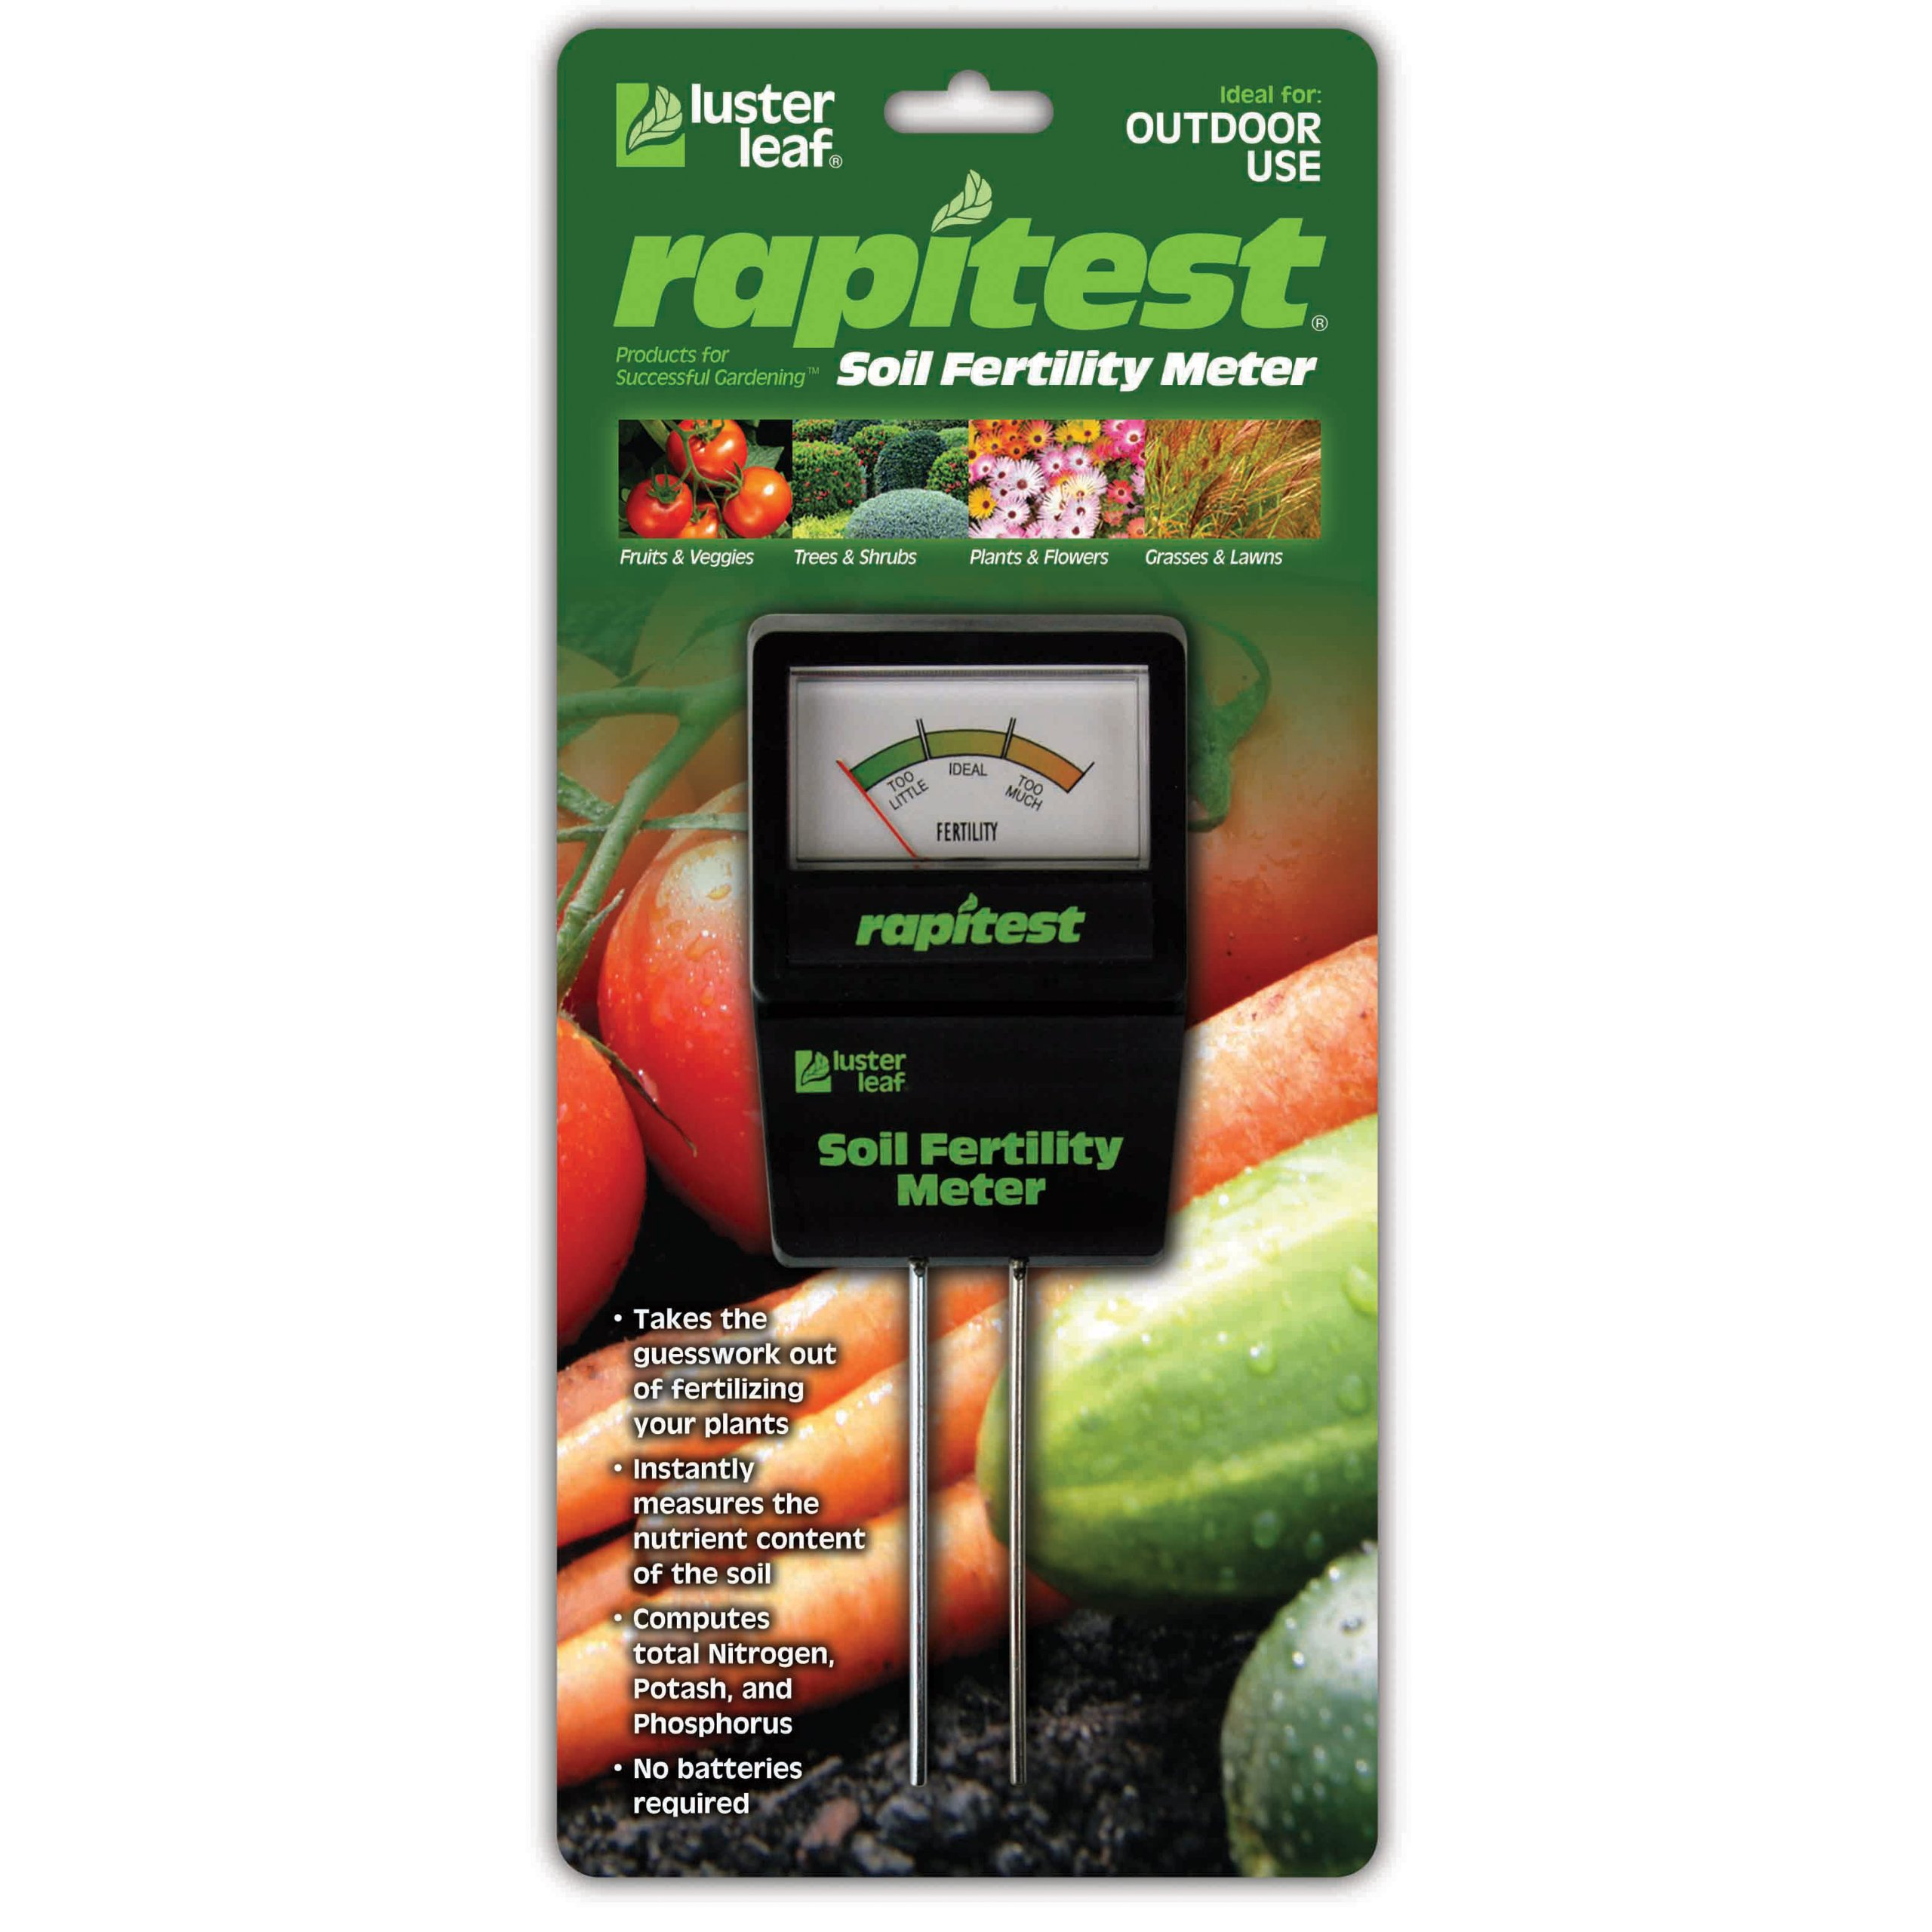 Luster Leaf 1865 Rapitest Soil Fertility Meter